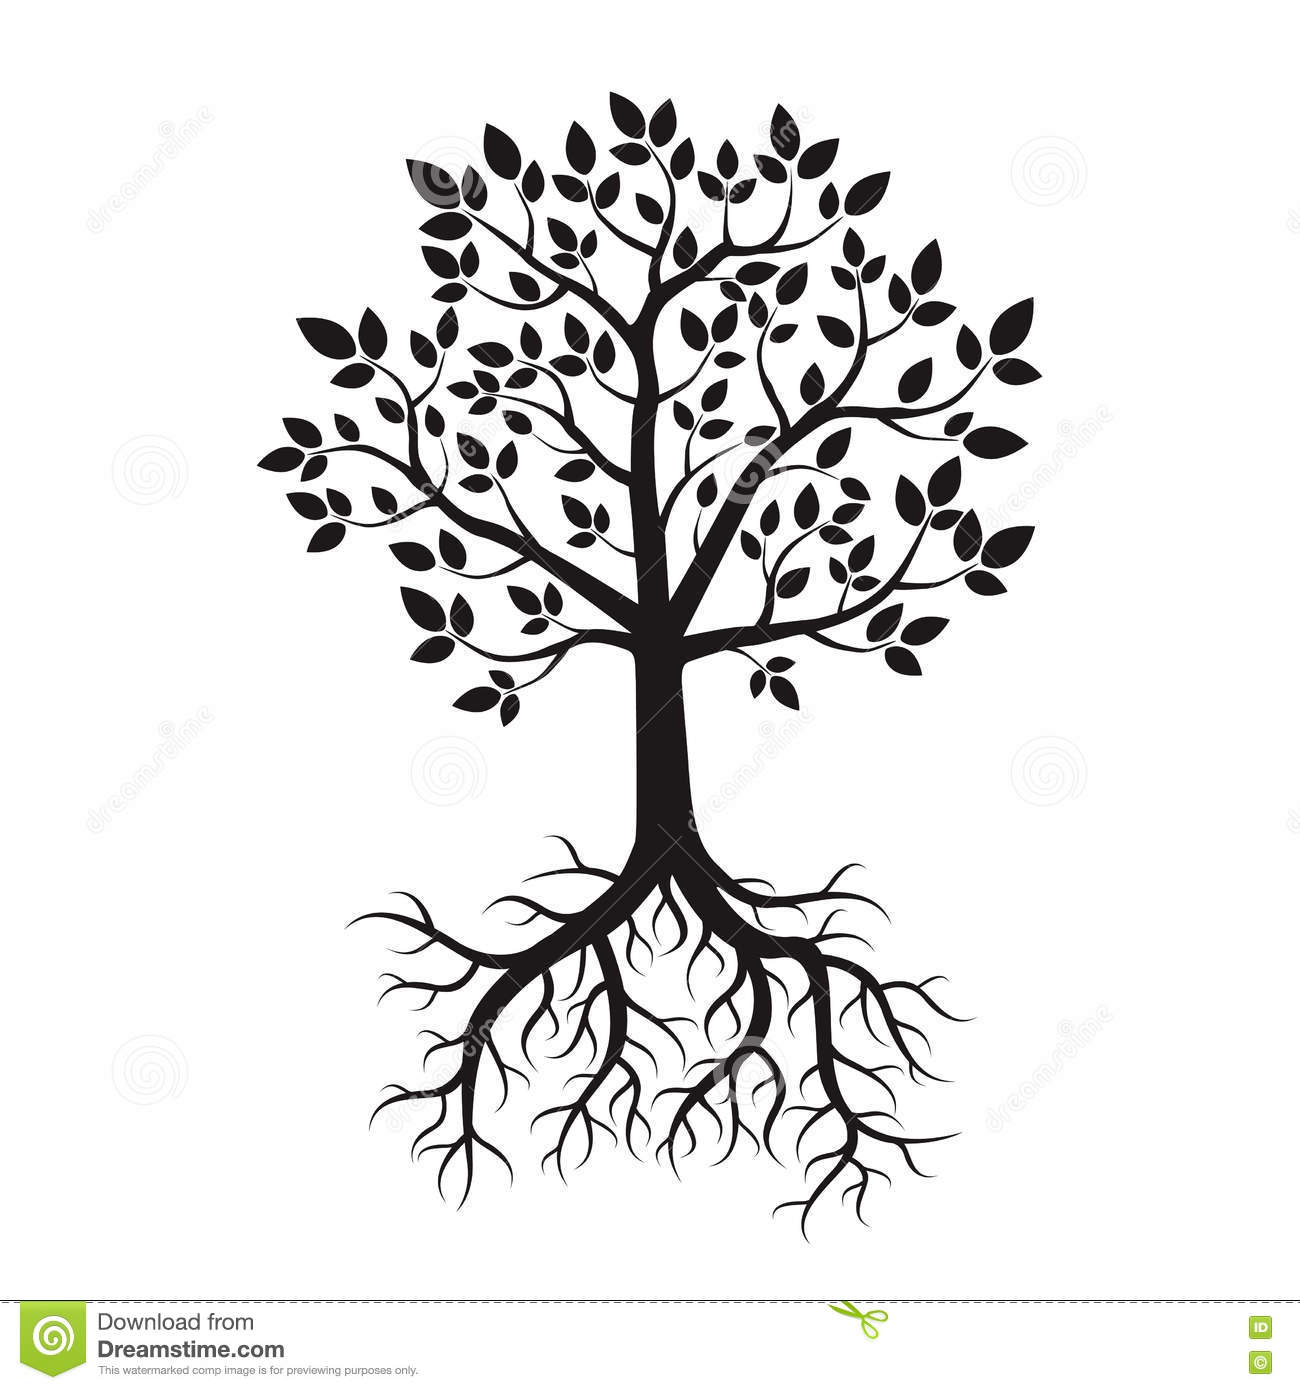 black tree and roots vector illustration stock illustration rh dreamstime com tree with roots vector free tree outline with roots vector